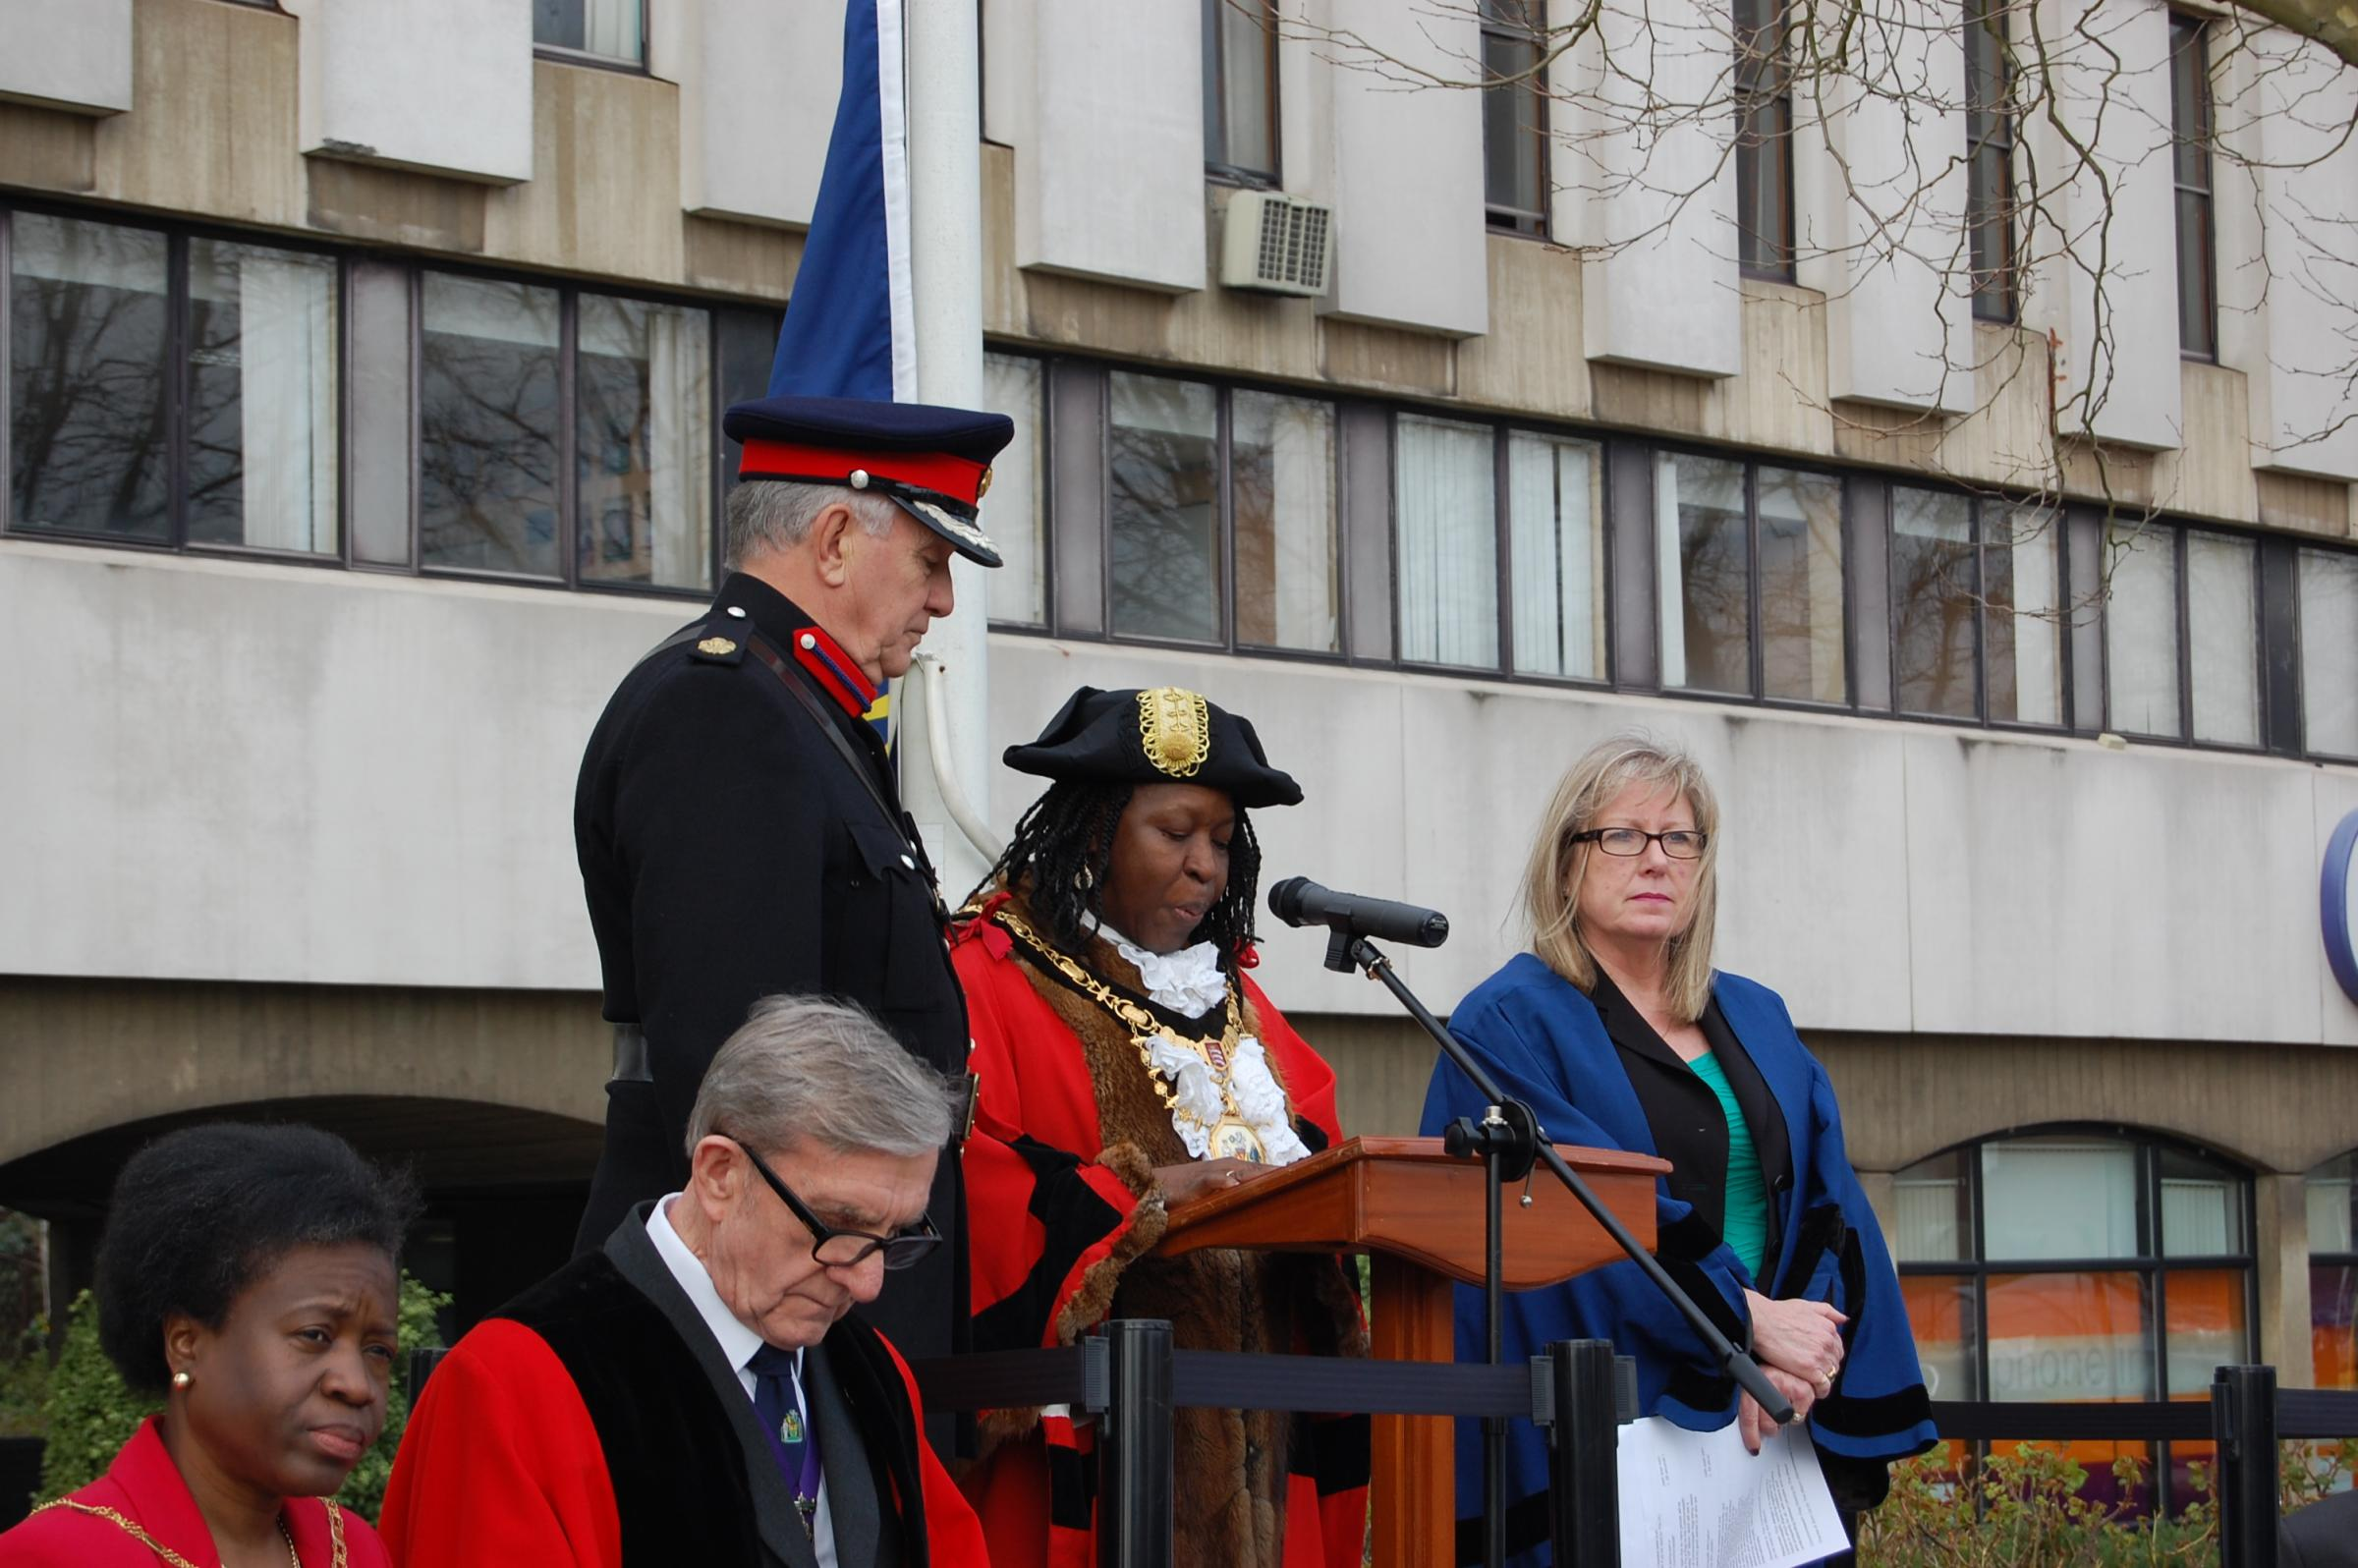 Borough marks Commonwealth Day